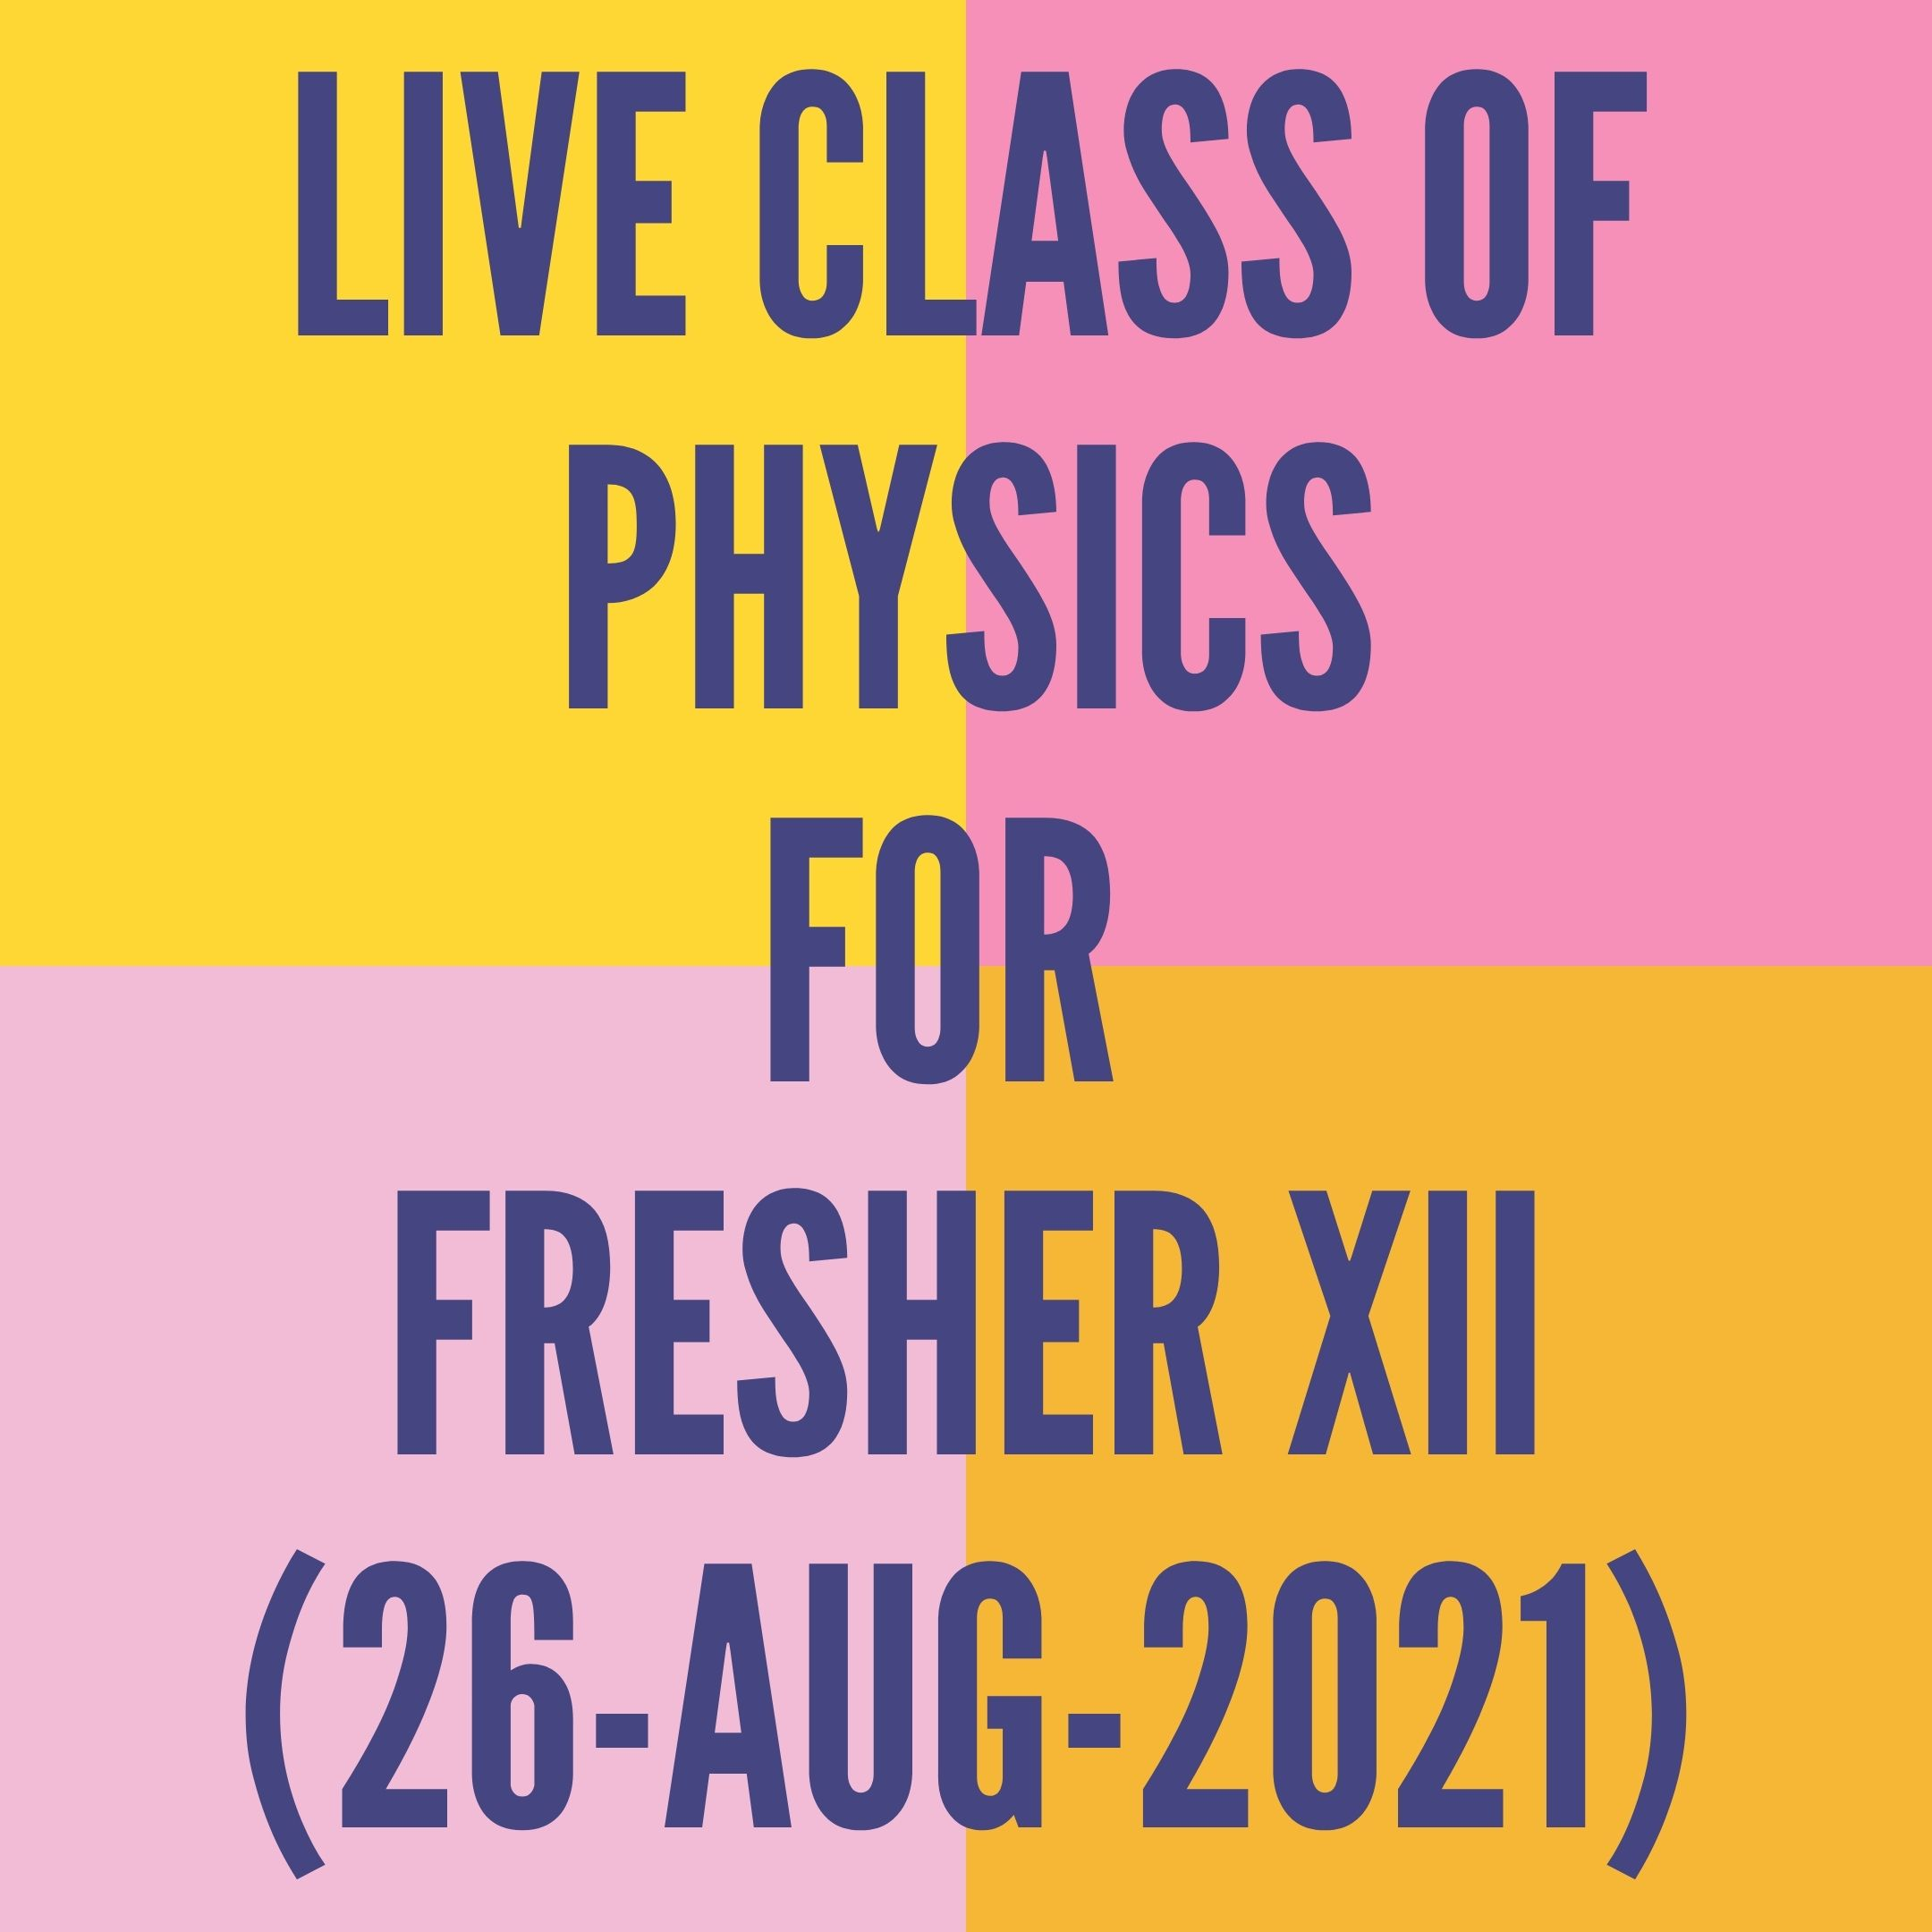 LIVE CLASS OF PHYSICS FOR FRESHER XII (26-AUG-2021) MAGNETIC EFFECT OF CURRENT